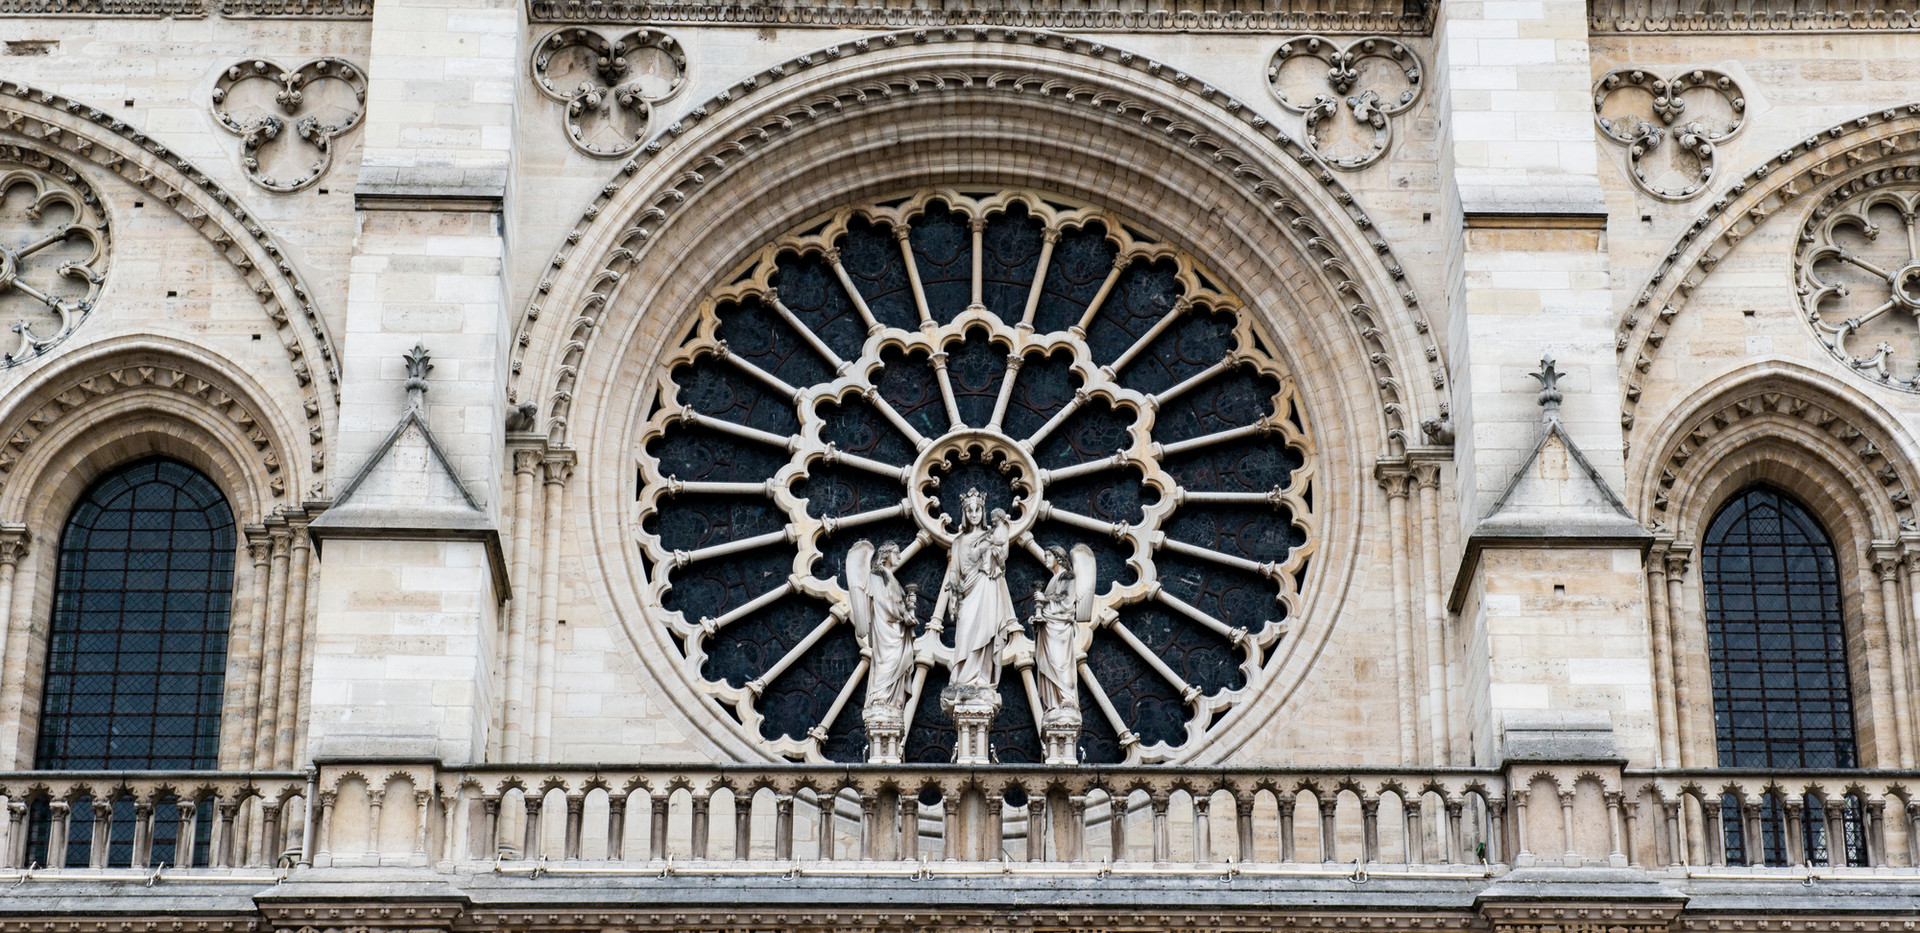 Entry Rose Window